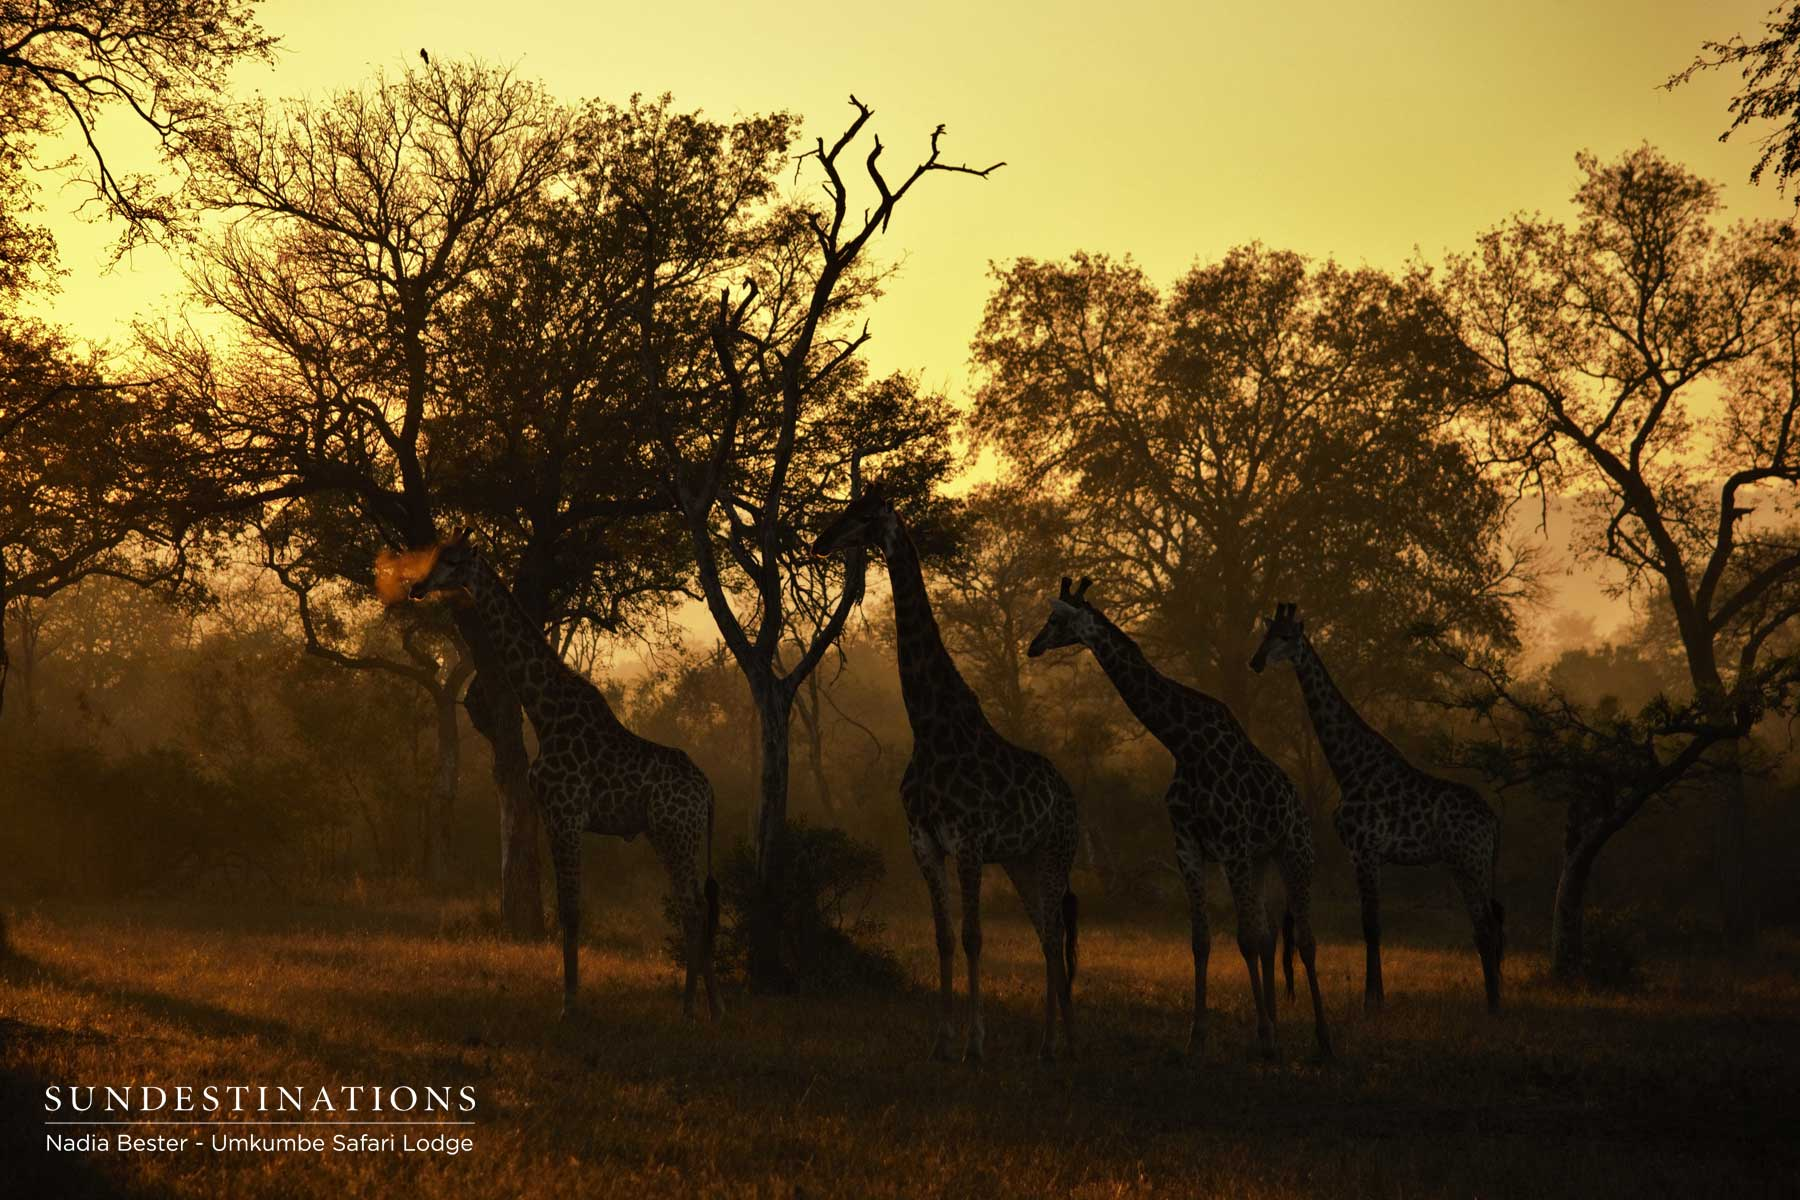 Giraffe in Moody Light Umkumbe